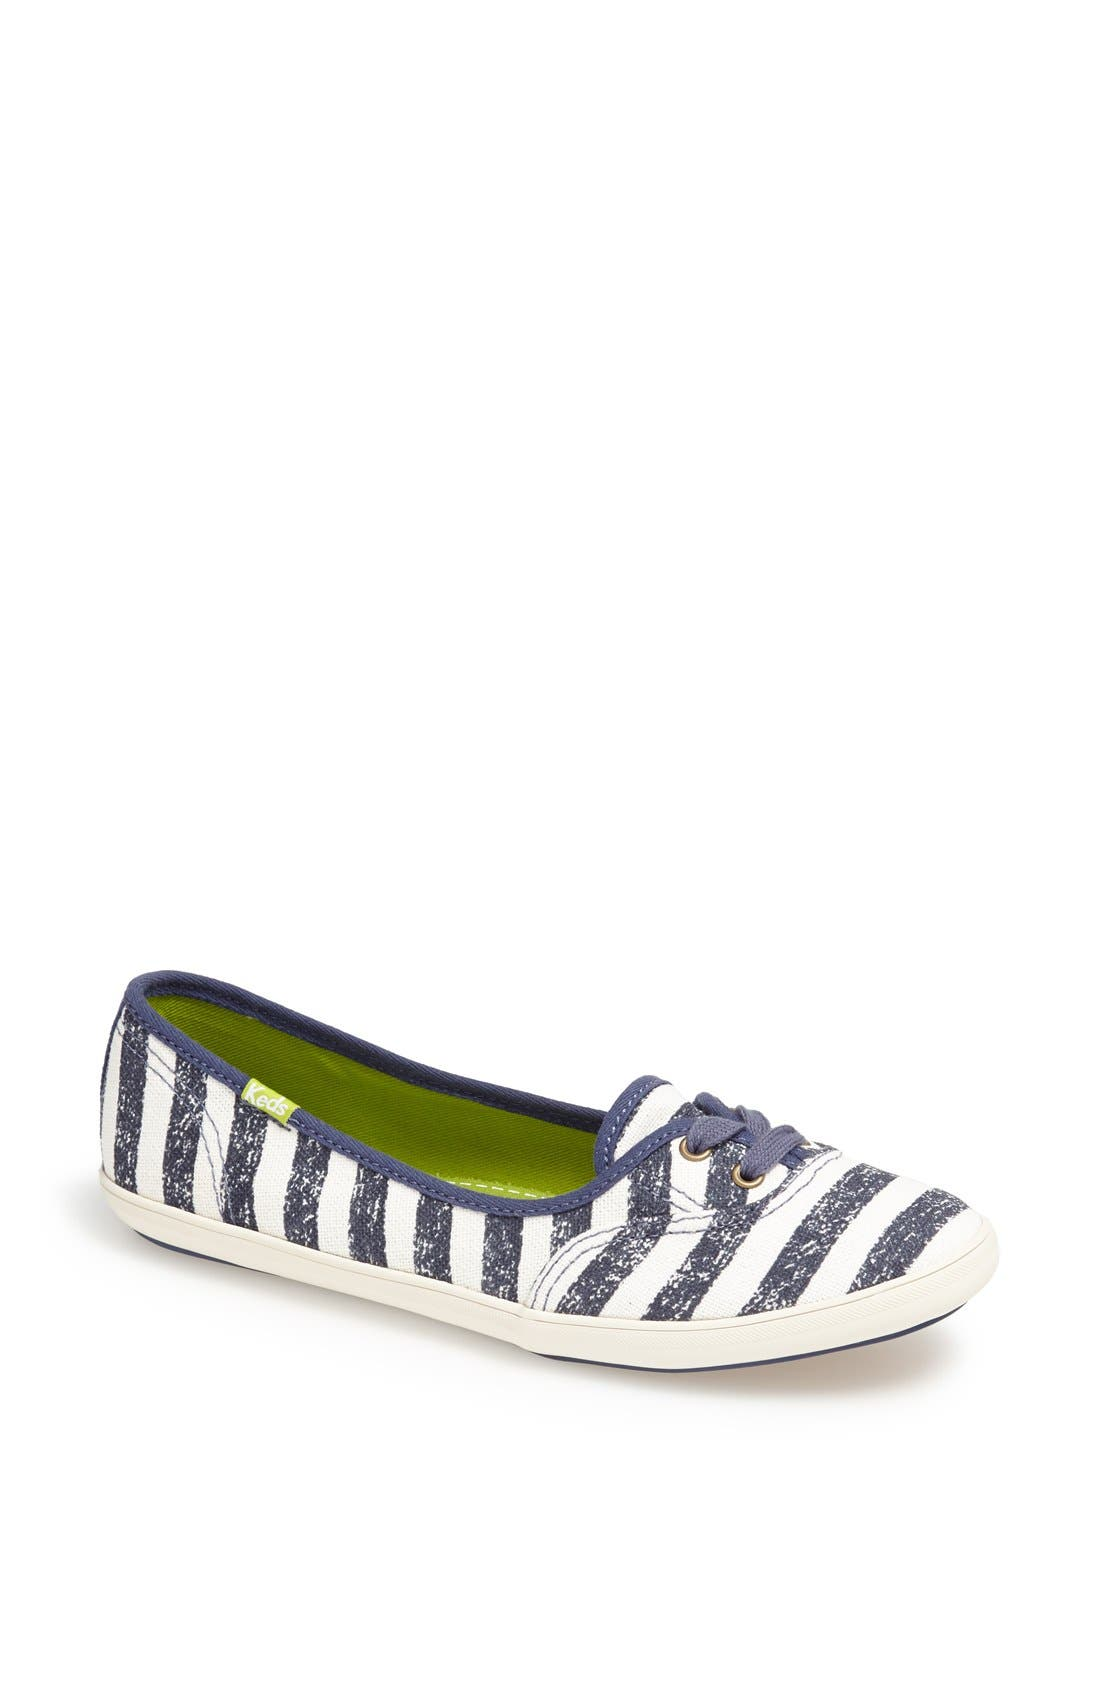 Alternate Image 1 Selected - Keds® 'Teacup' Slip-On (Women)